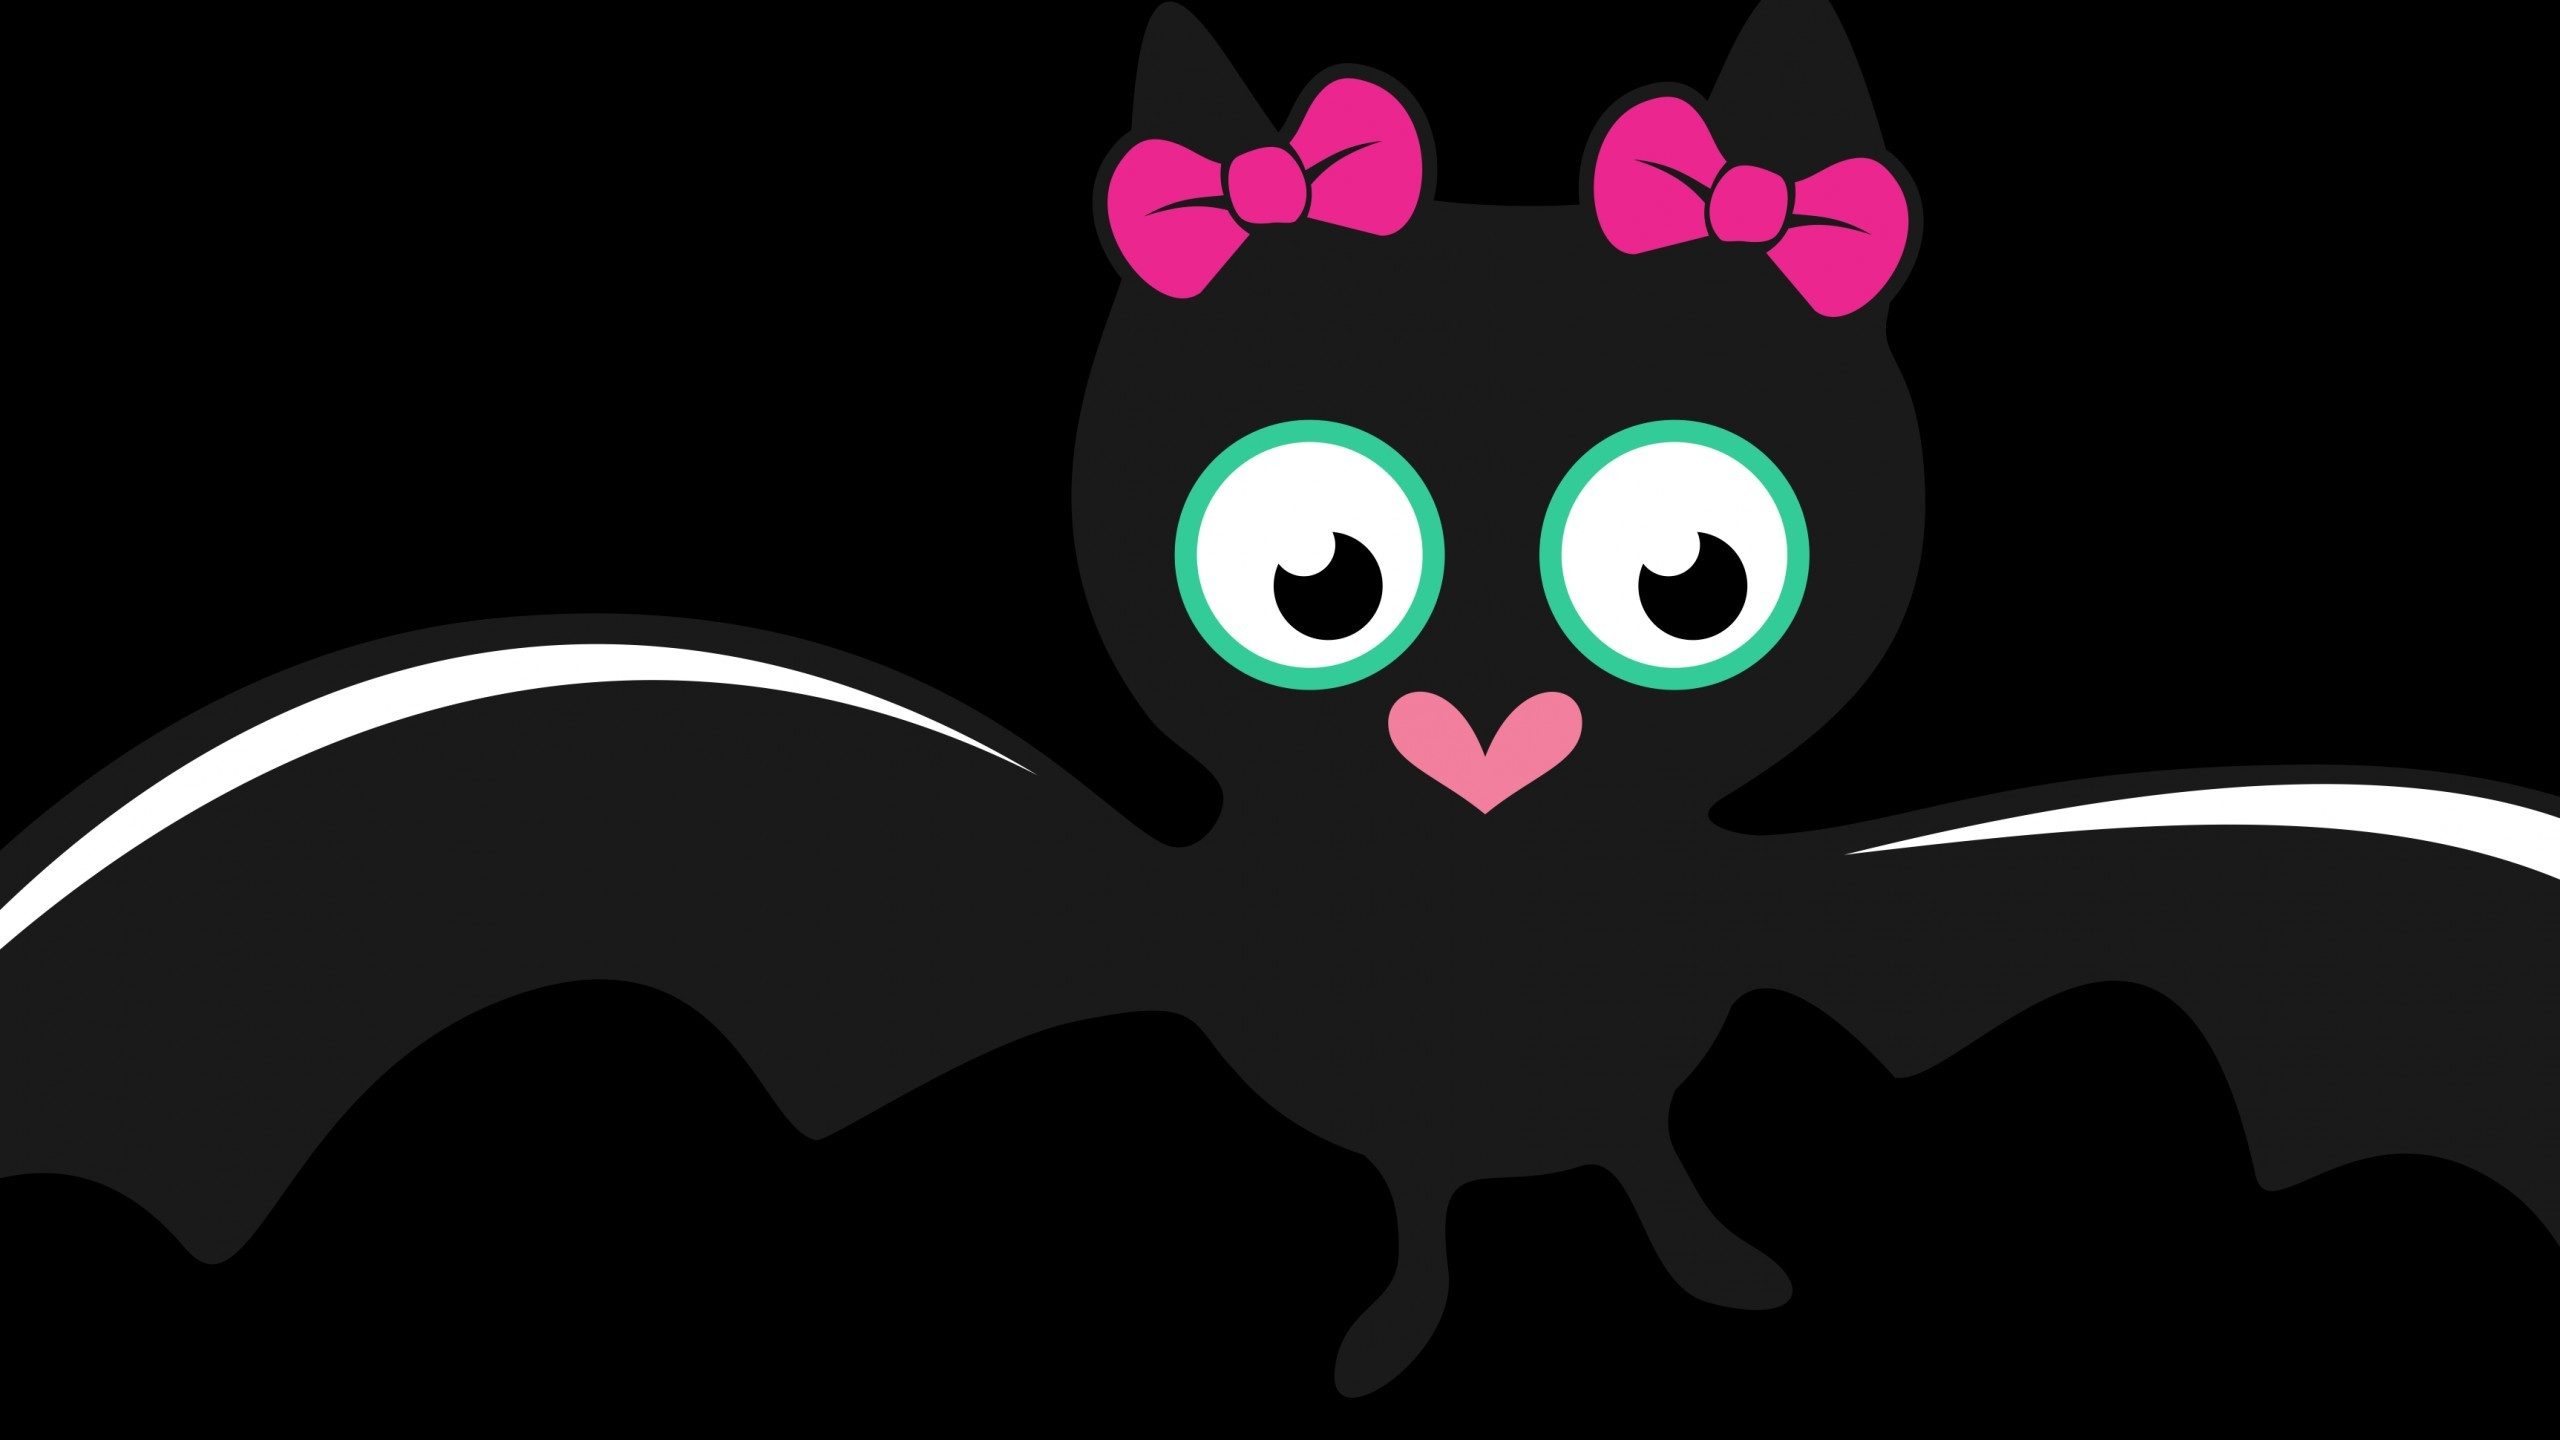 Girly Cute Halloween Wallpaper.Cute Backgrounds For Laptops 76 Pictures